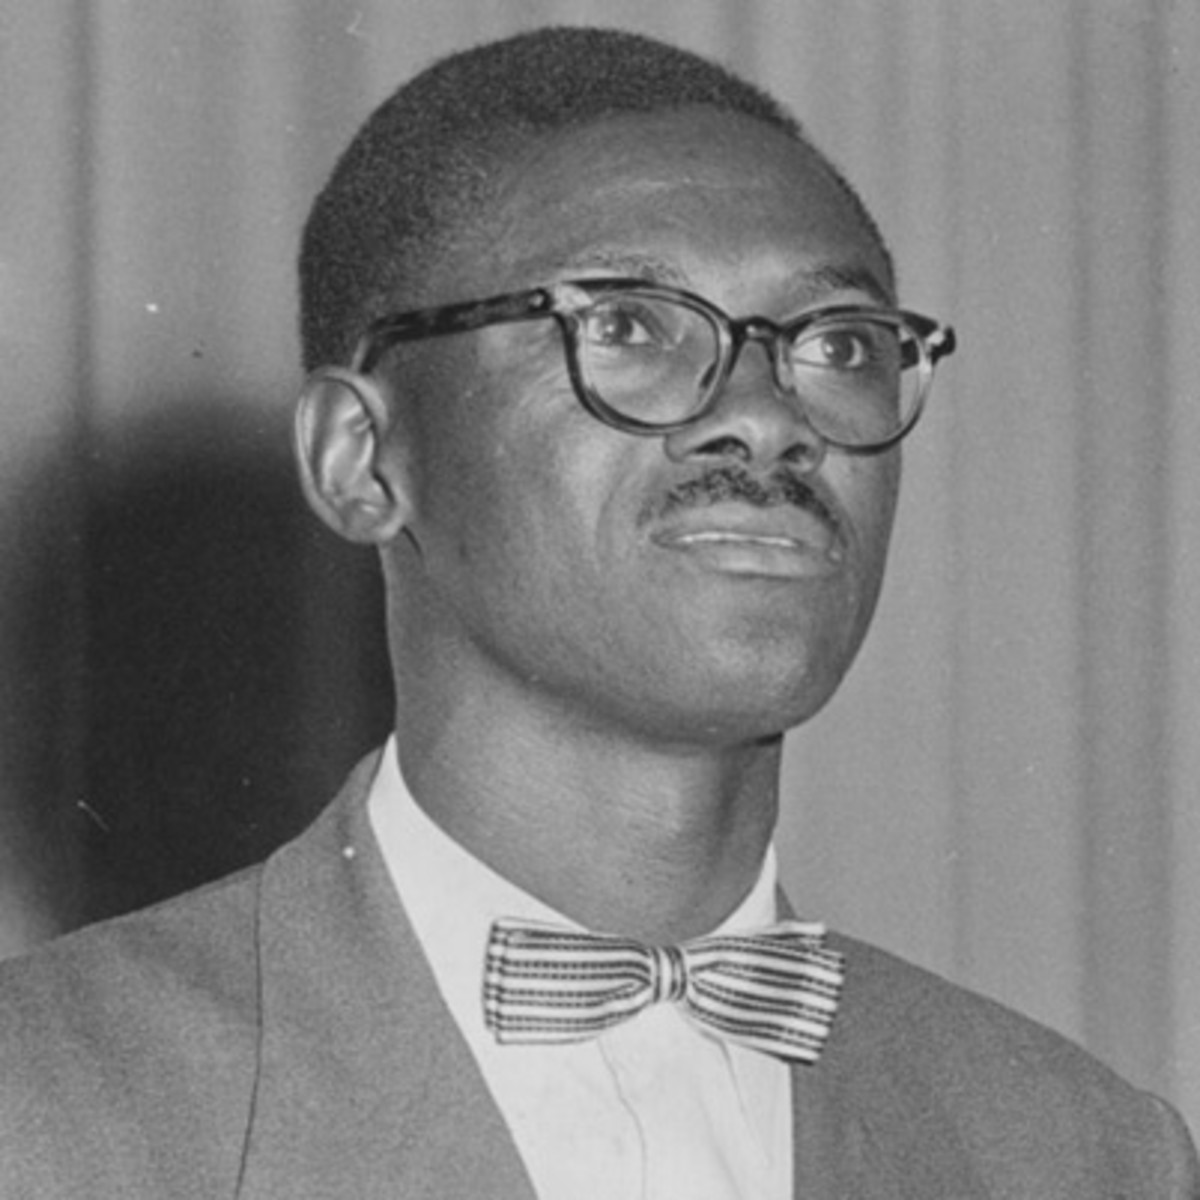 biography patrice lumumba Lumumba, patrice emery (1925-1961)  patrice lumumba, the first prime minister of the independent nation of the congo, was born july 2, 1925 in onalua in kasai province of the belgian congo with just a primary education, lumumba emerged to become one of africa's most vocal critics of colonialism.